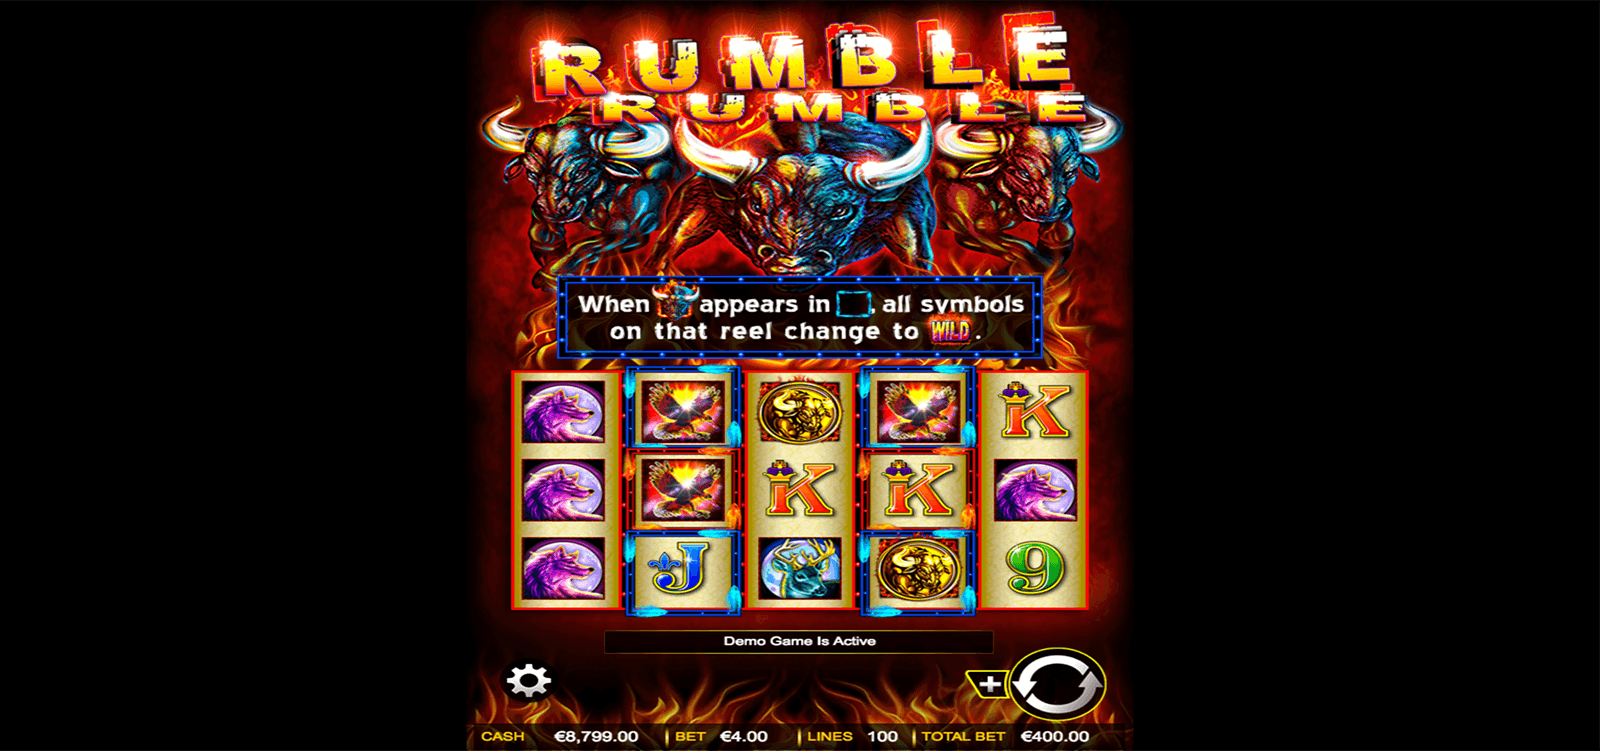 Jungle Rumble Slots - Play Real Casino Slot Machines Online